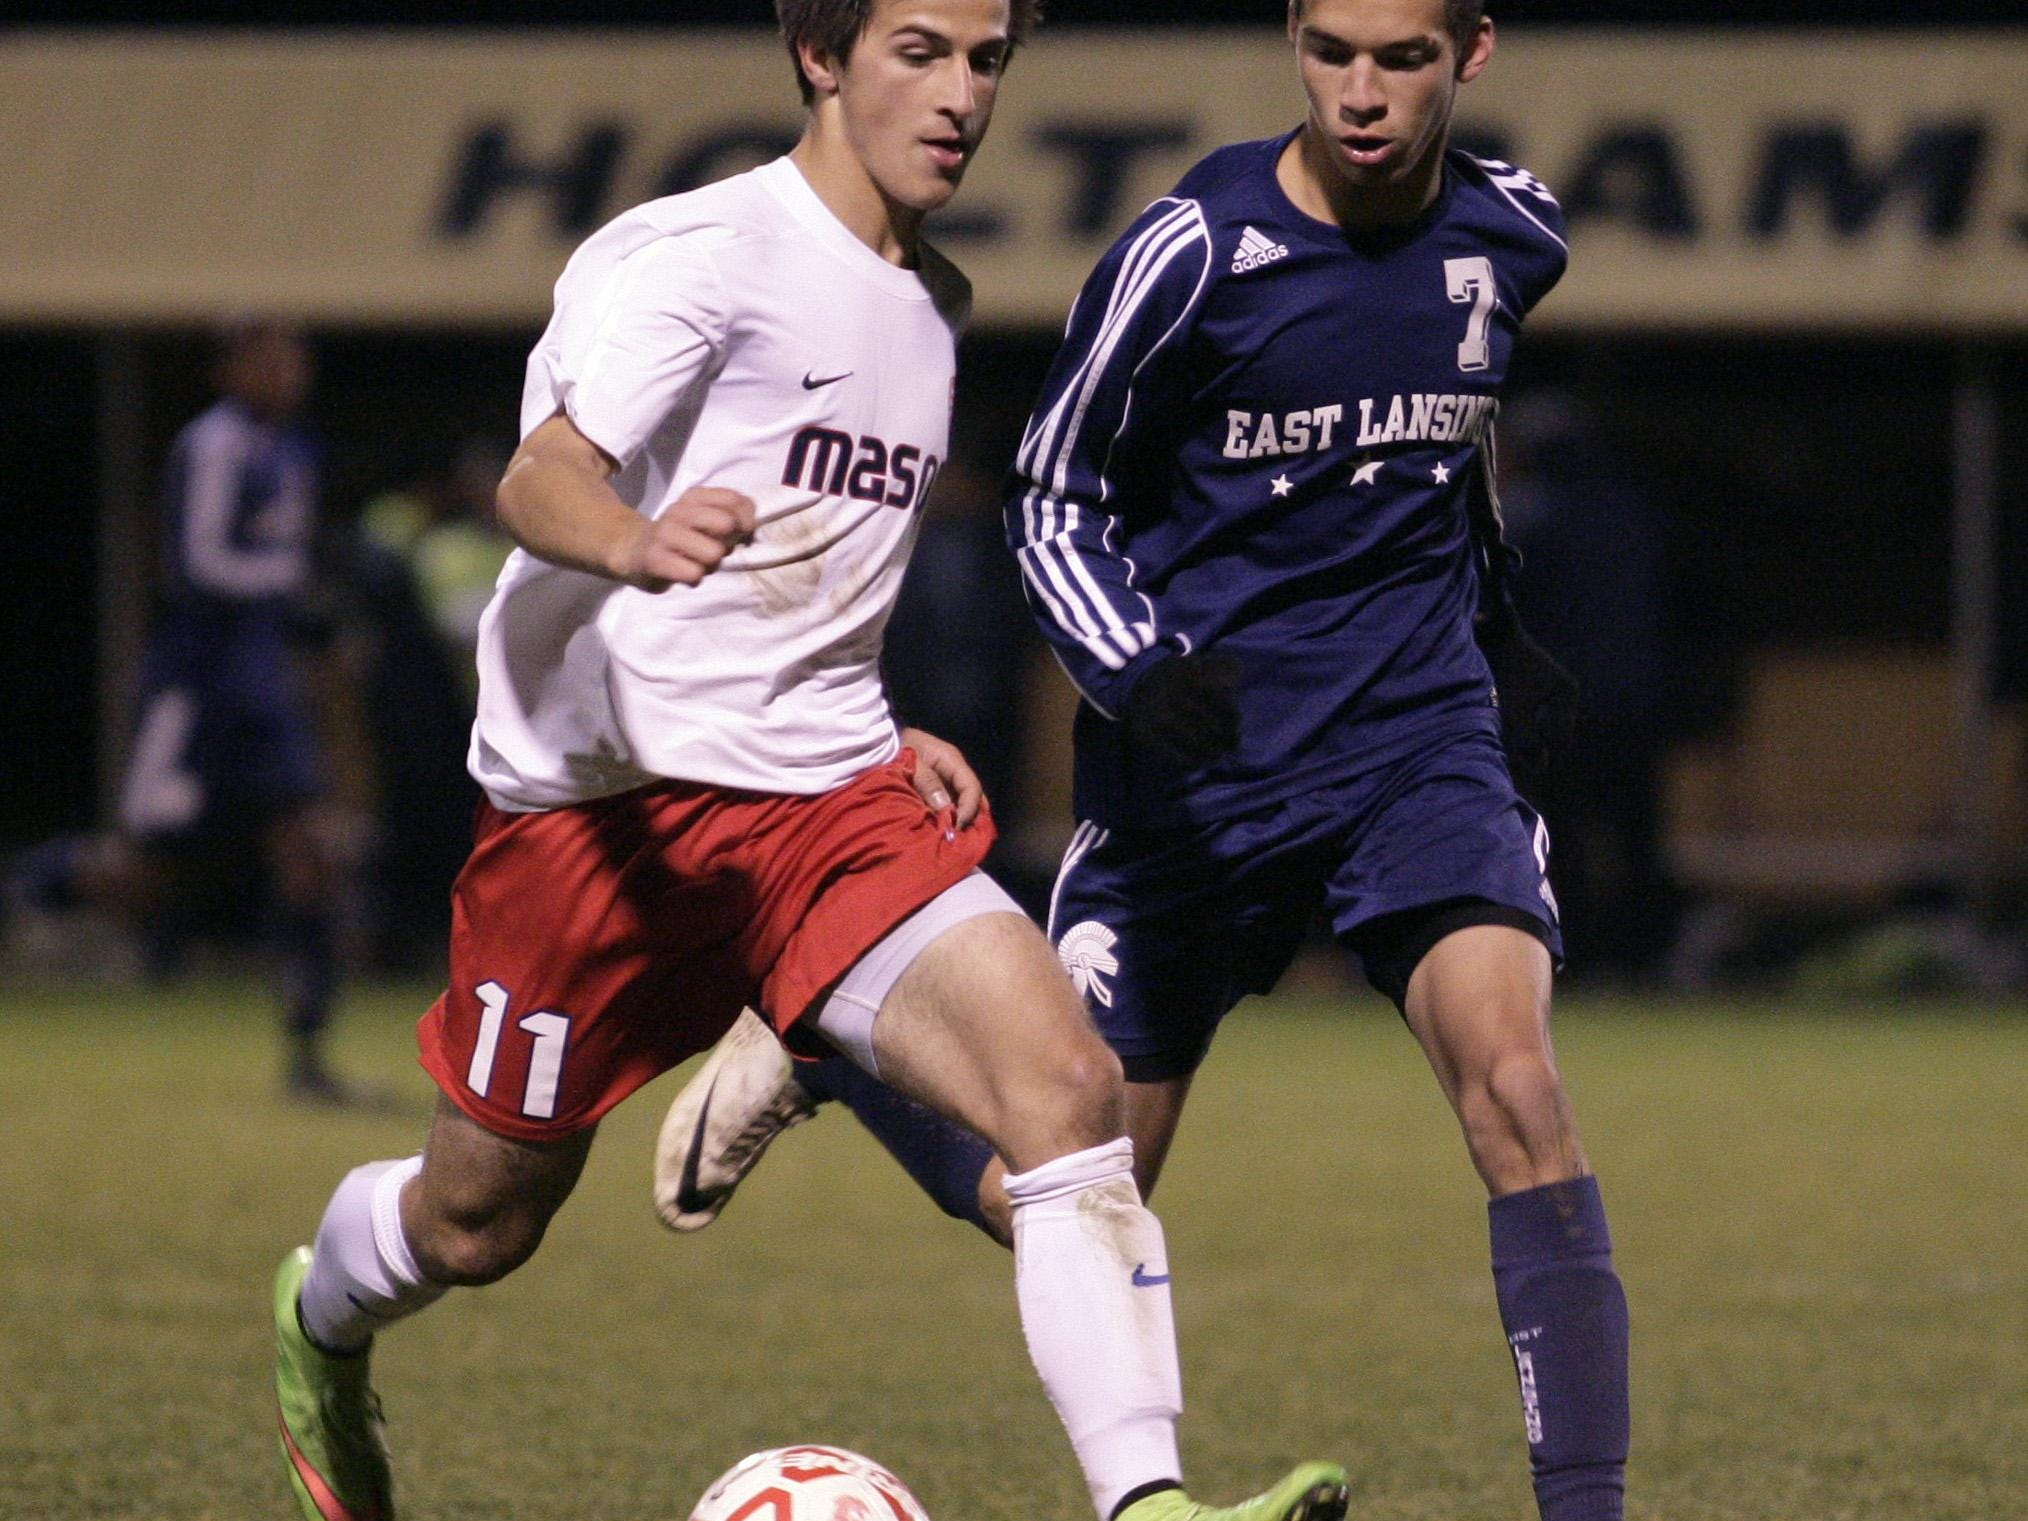 Mason's Leutrim Shefkiu, left, and East Lansing's Zach Lane are among the top returning players in mid-Michigan.